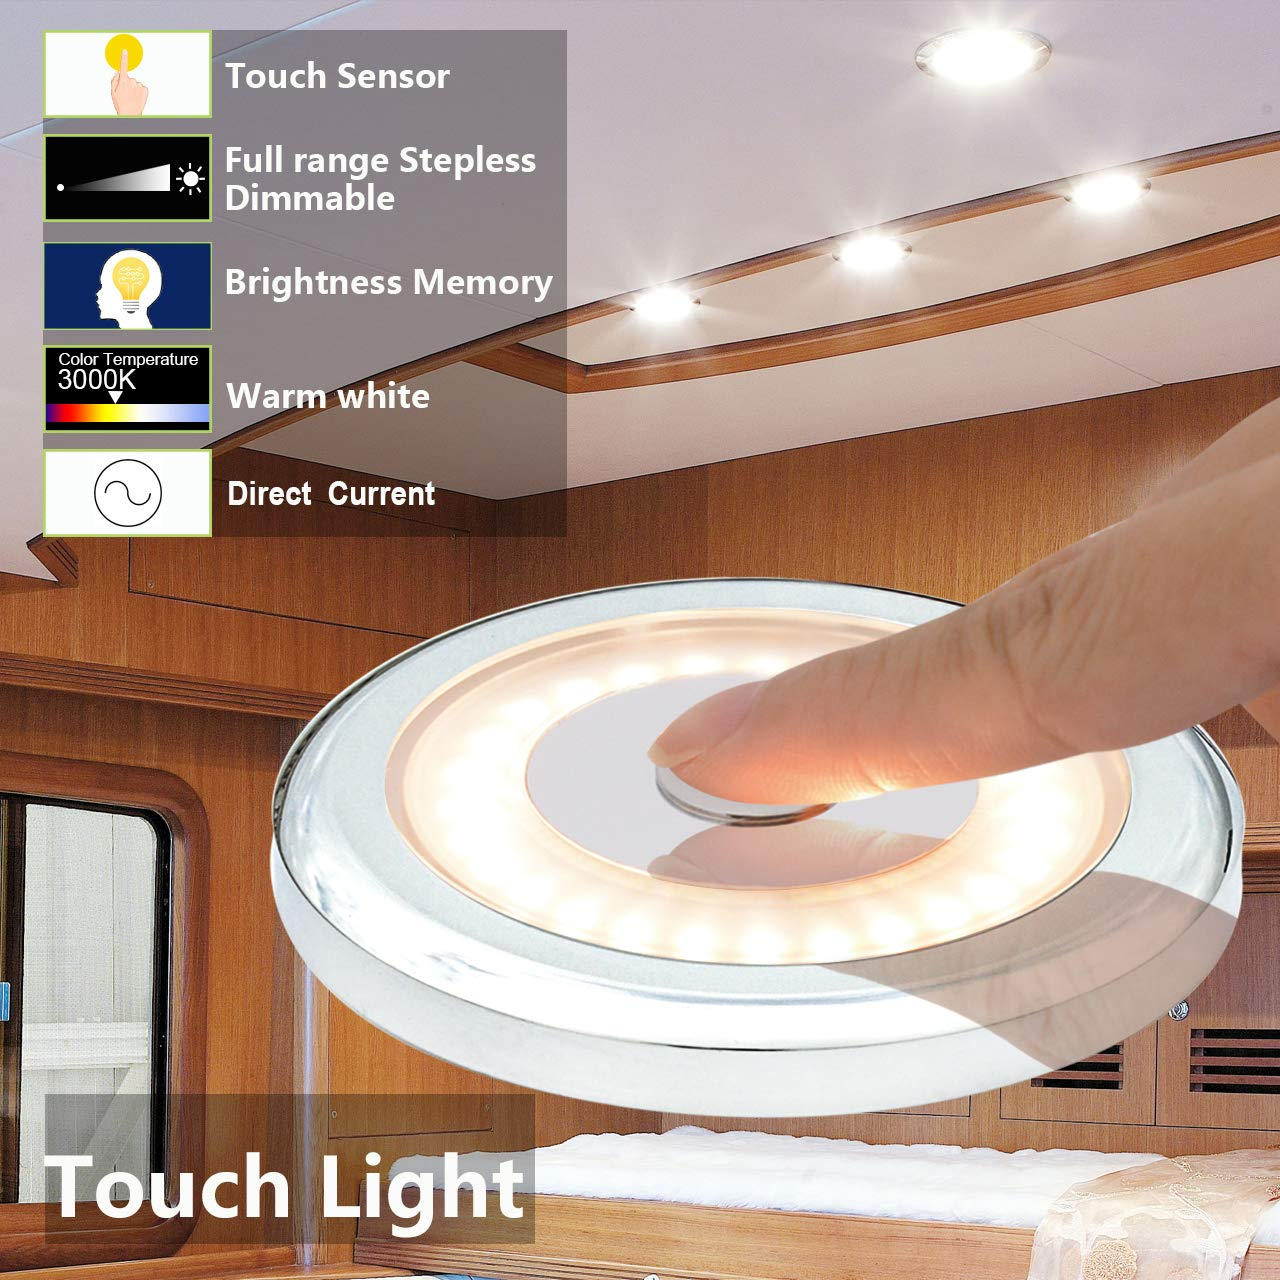 Sailboat Surface Mounted Ultra-Thin Interior Lighting for Motorhome Pack of 6 Caravan Yachts Dimmer Switch 12V 2800K Warm White Waterproof LED 3W RV Ceiling Touch Adjustable Light Boat